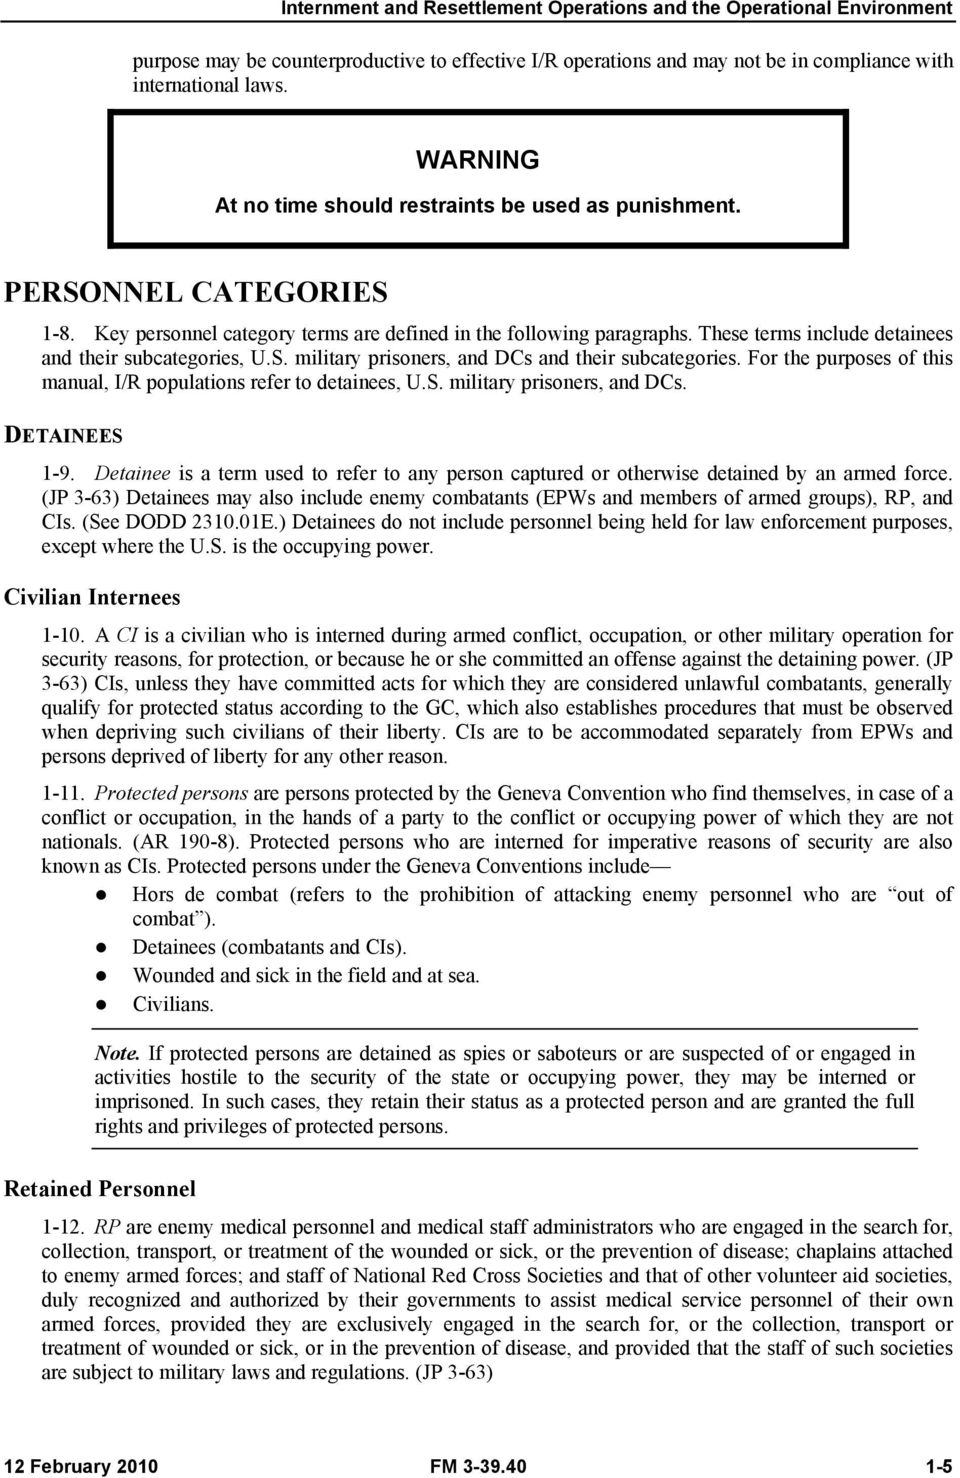 These terms include detainees and their subcategories, U.S. military prisoners, and DCs and their subcategories. For the purposes of this manual, I/R populations refer to detainees, U.S. military prisoners, and DCs. DETAINEES 1-9.